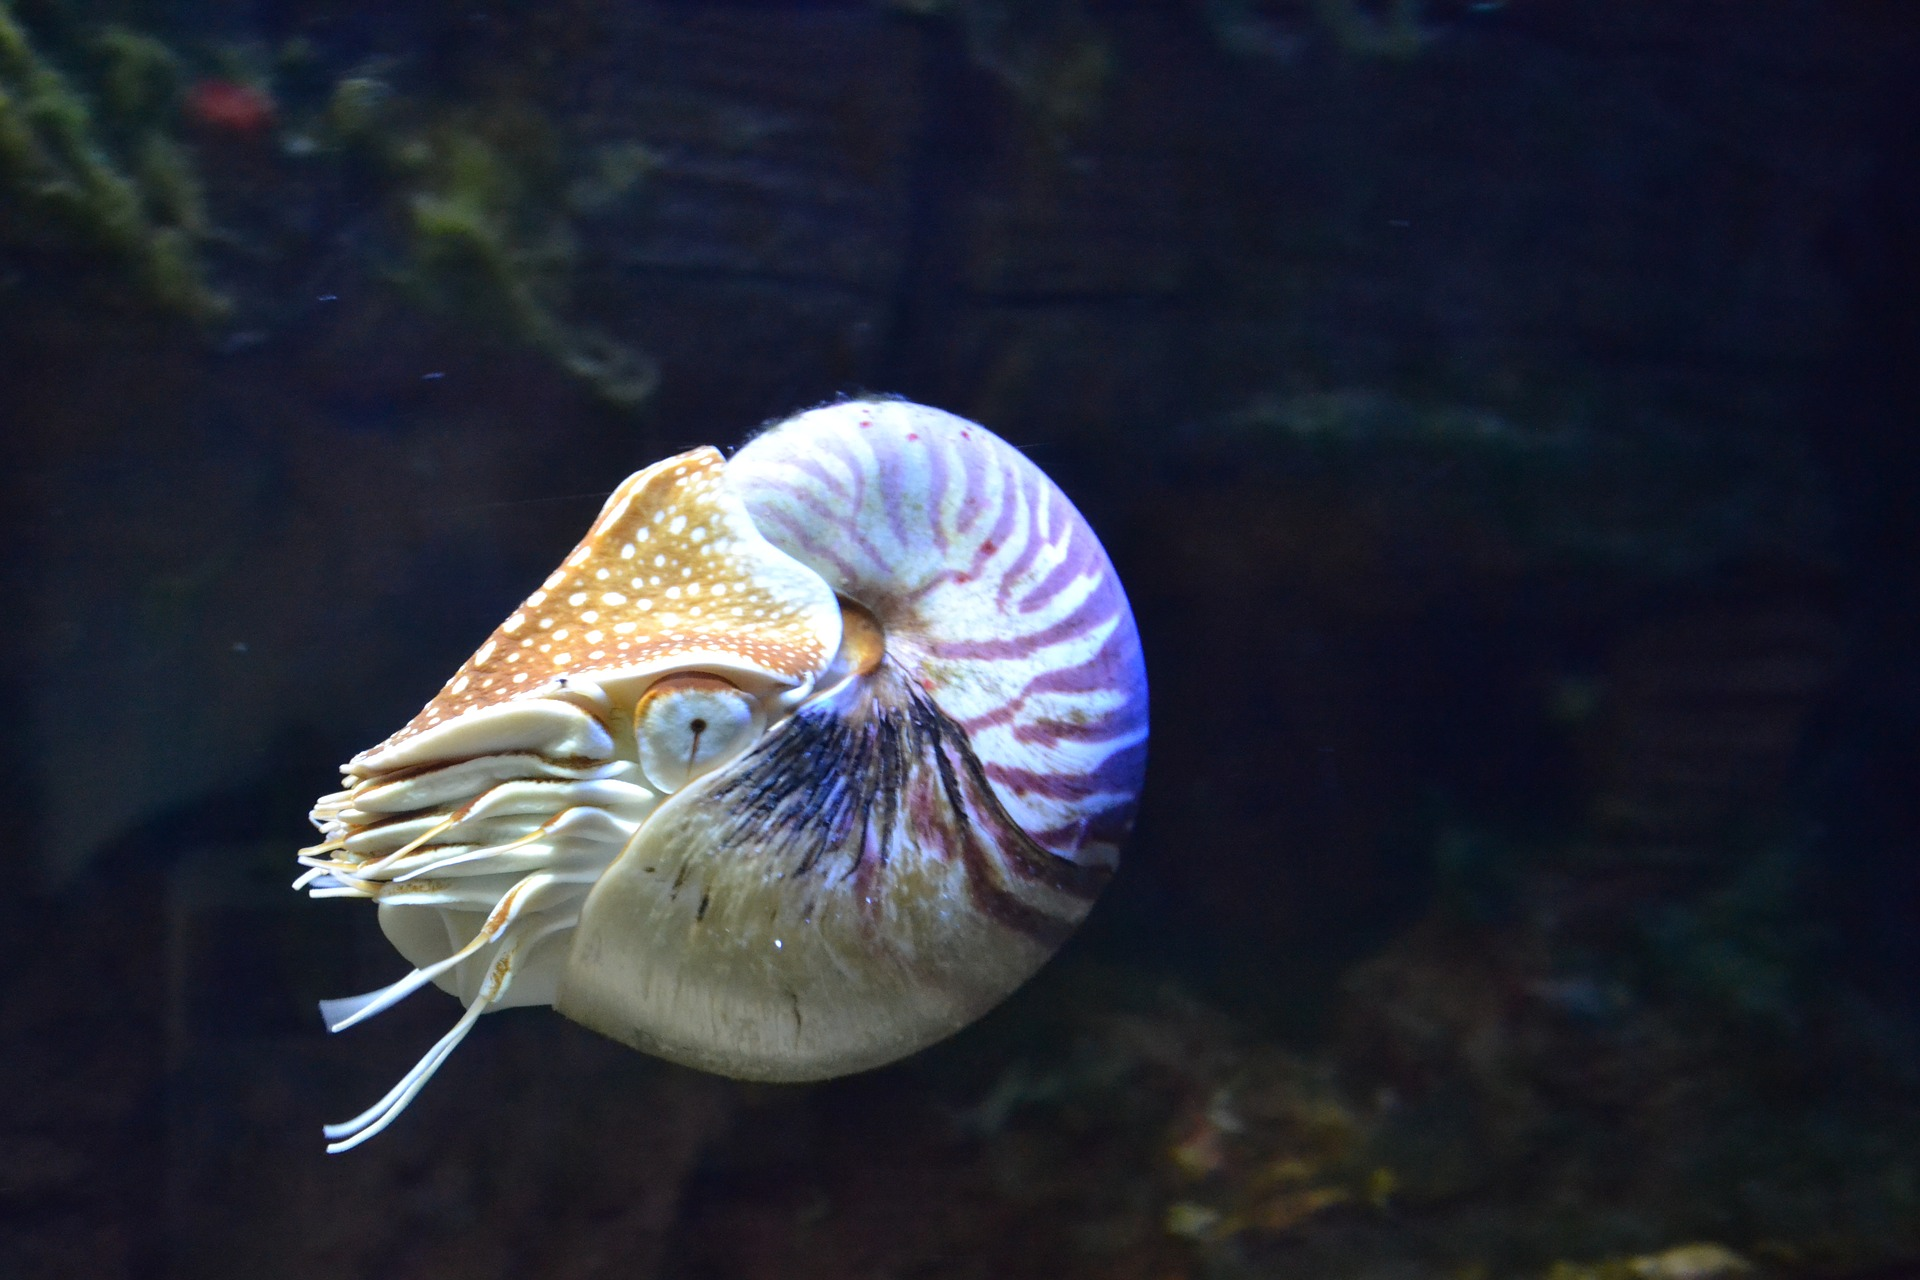 the shell of a live swimming nuatilus is used to demonstrate how the process of selling your central FL home is cyclical